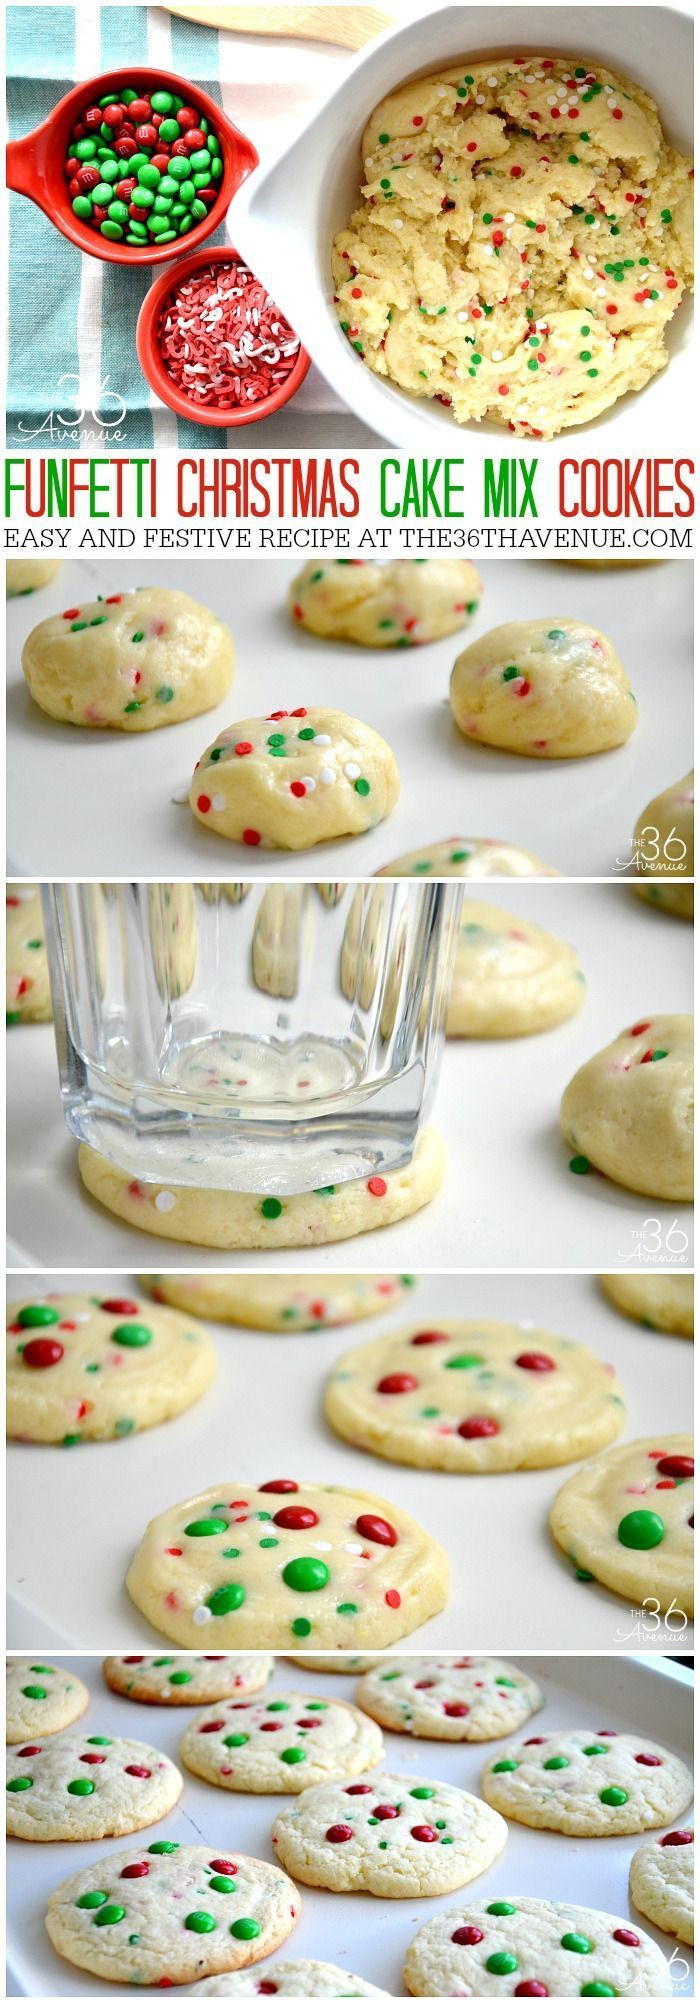 Easy Christmas Cookies Pinterest  100 Christmas Cookie Recipes on Pinterest